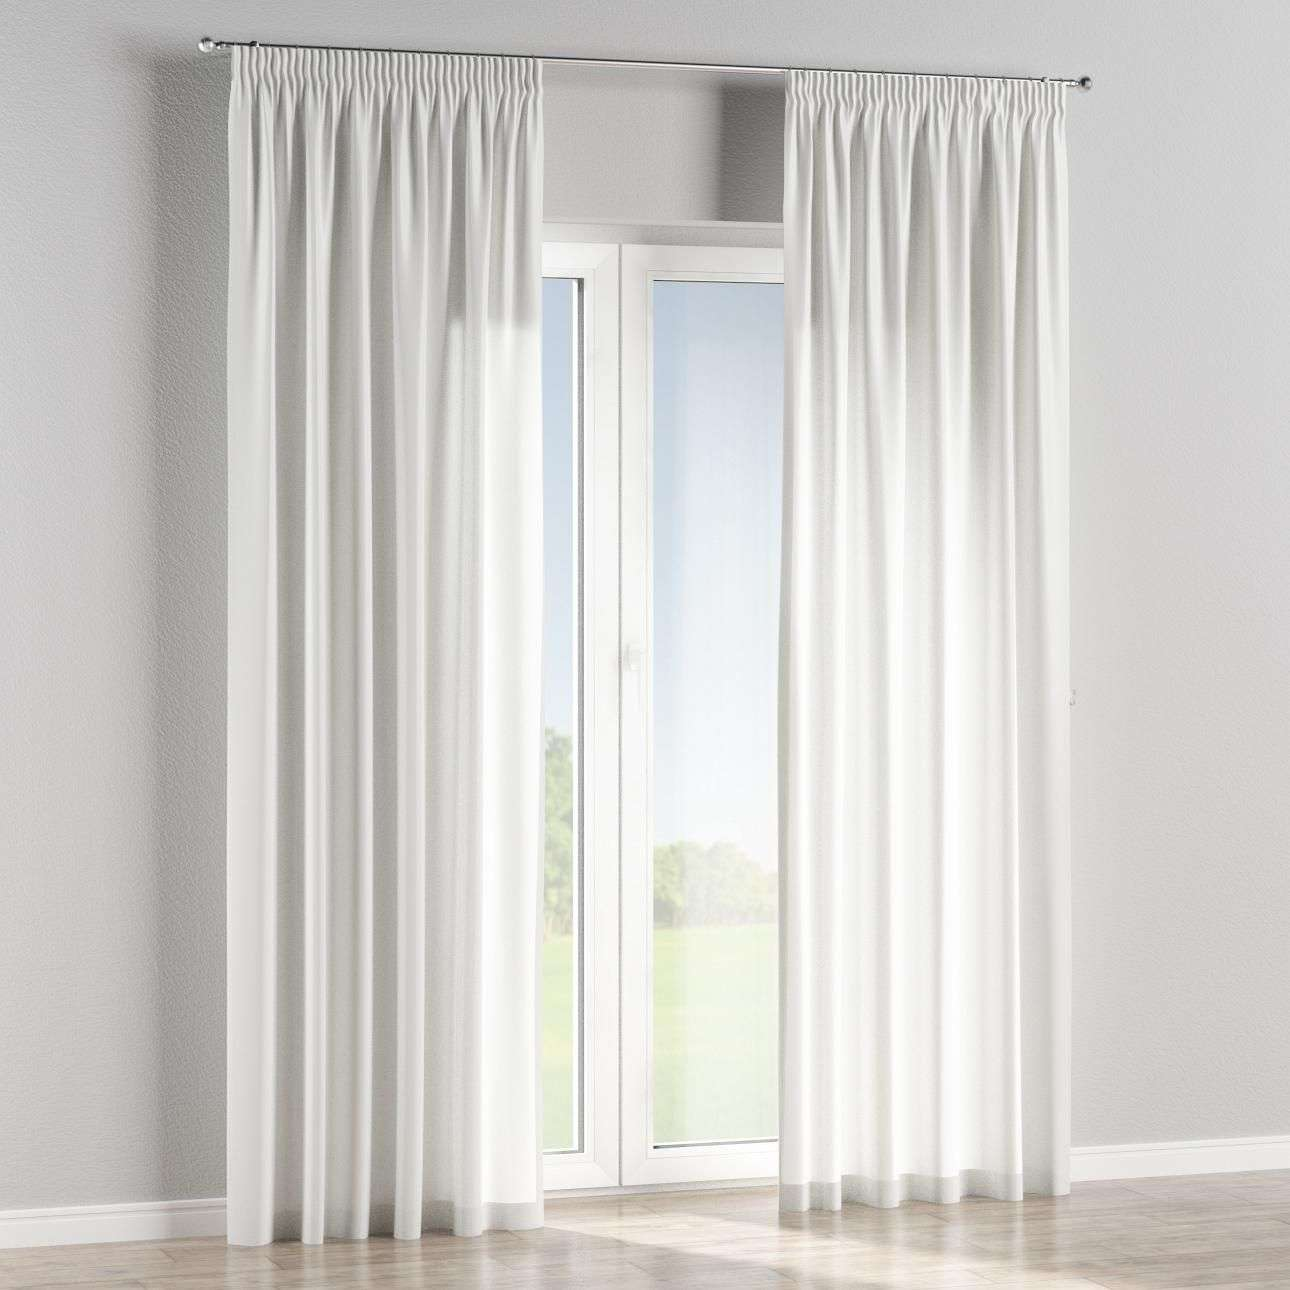 Pencil pleat curtains in collection SALE, fabric: 137-44